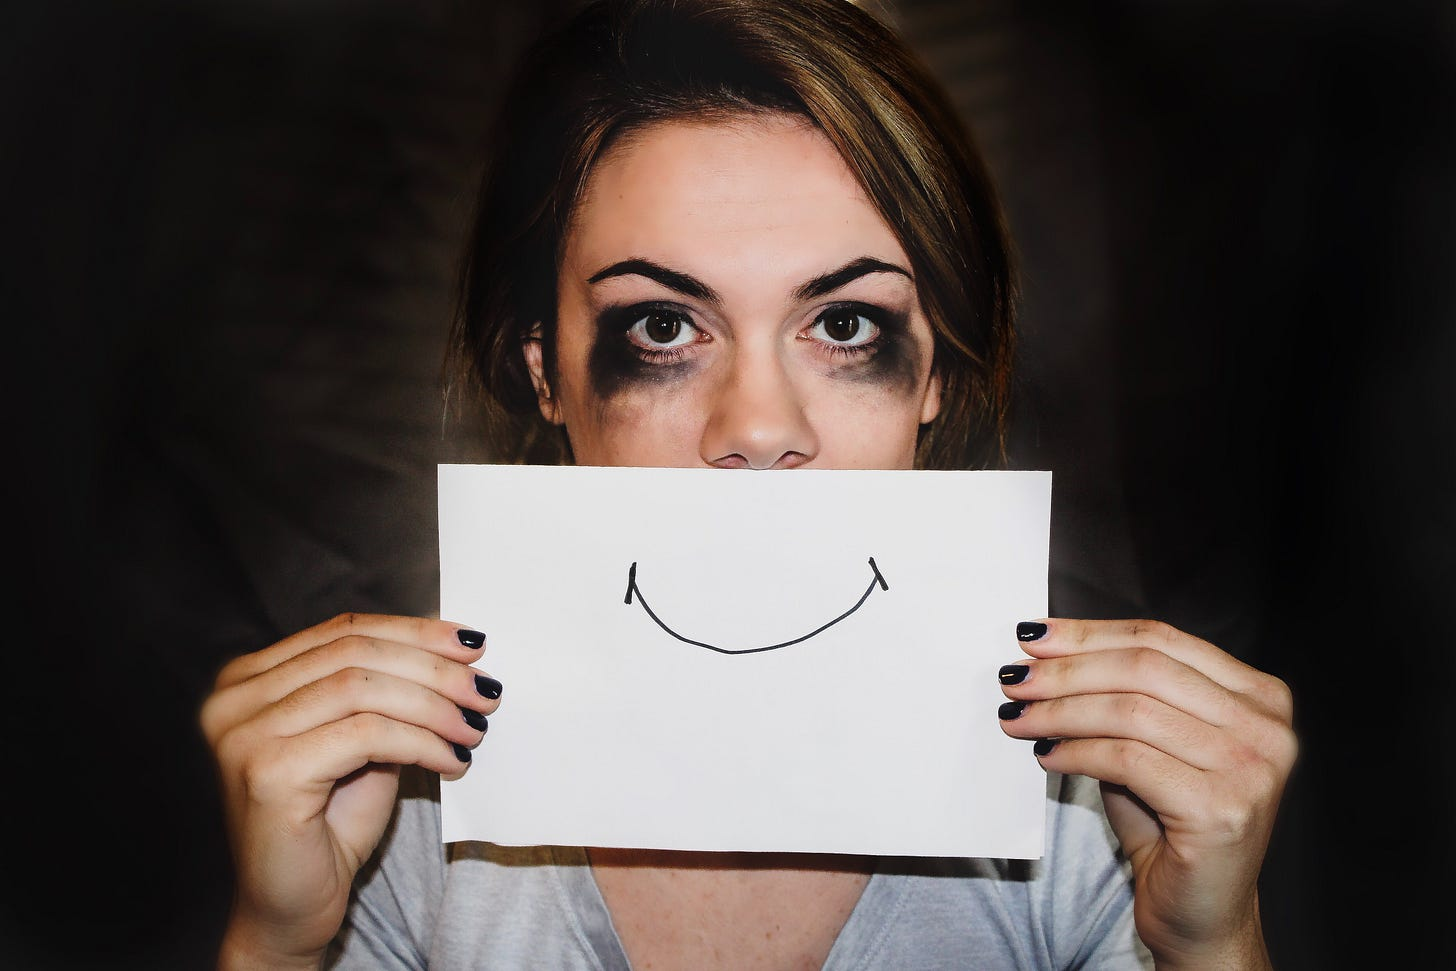 Photo of a woman with black eye makeup holding up a paper with a smiling face over her mouth. Sydney Sims / Unsplash